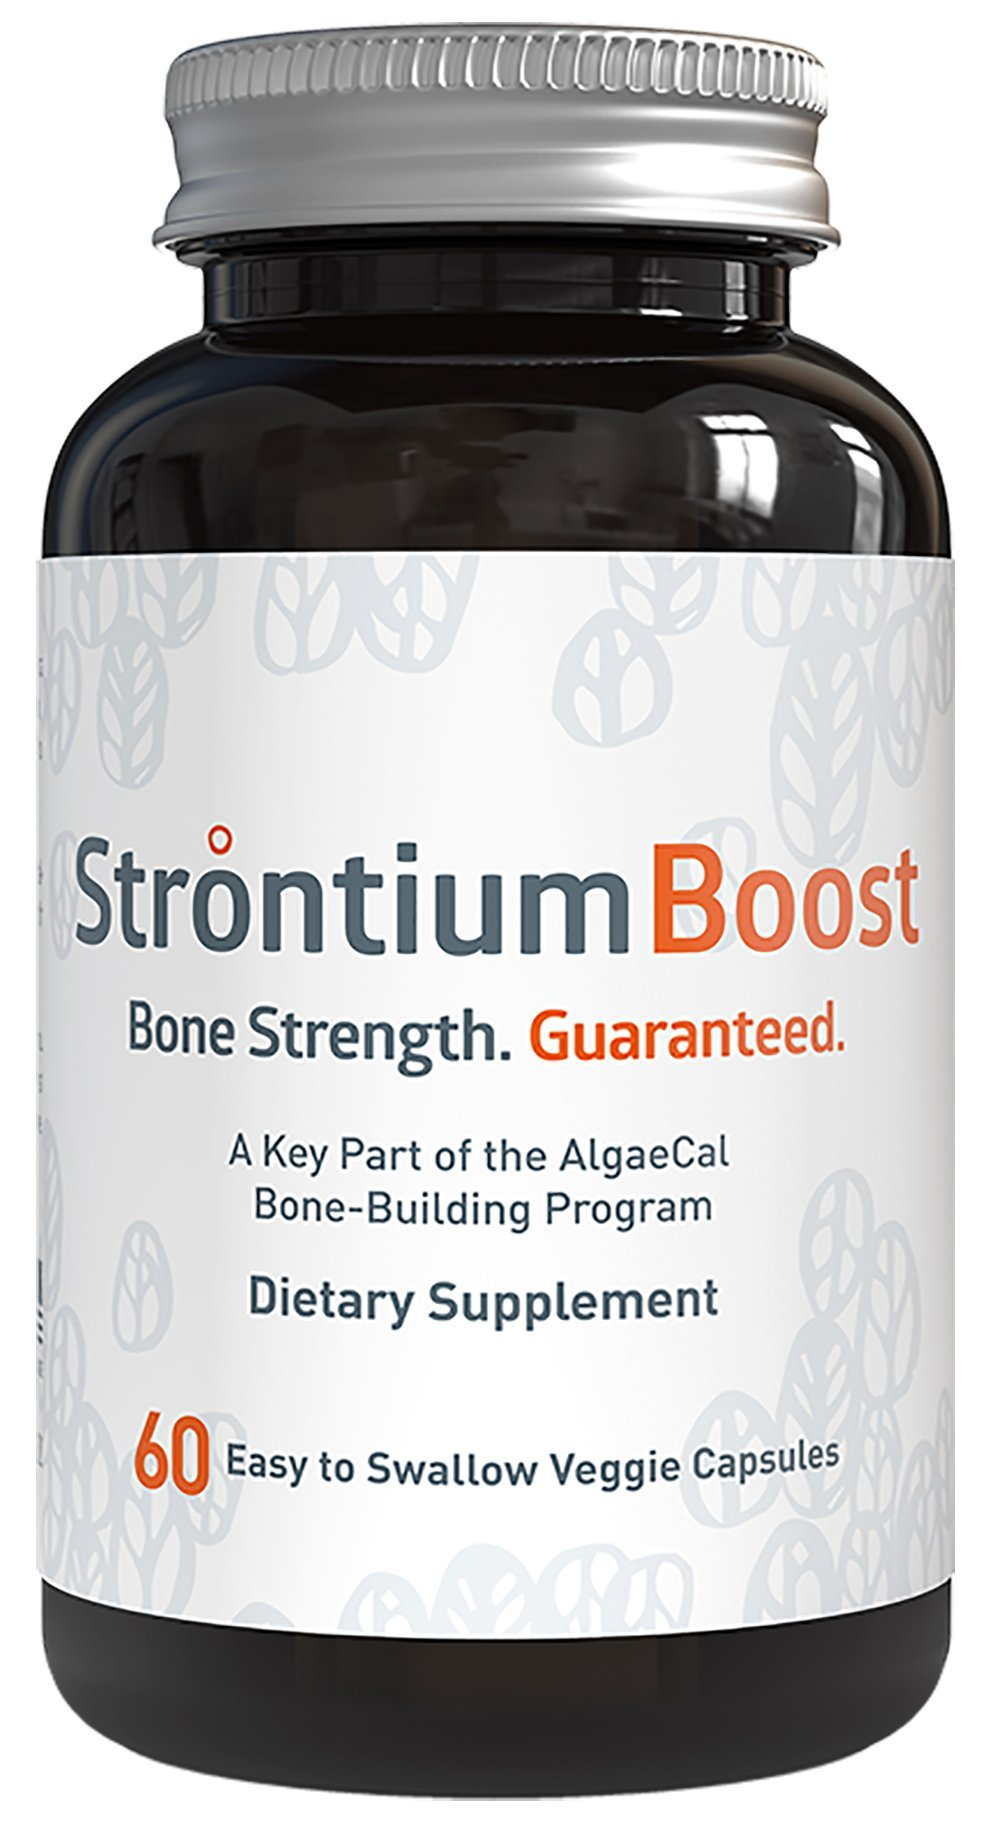 Strontium Boost - Natural Strontium Citrate Supplement - Scientifically Proven To Increase Bone Density In 6 Months - 60 Easy-To-Swallow Veggie Capsules